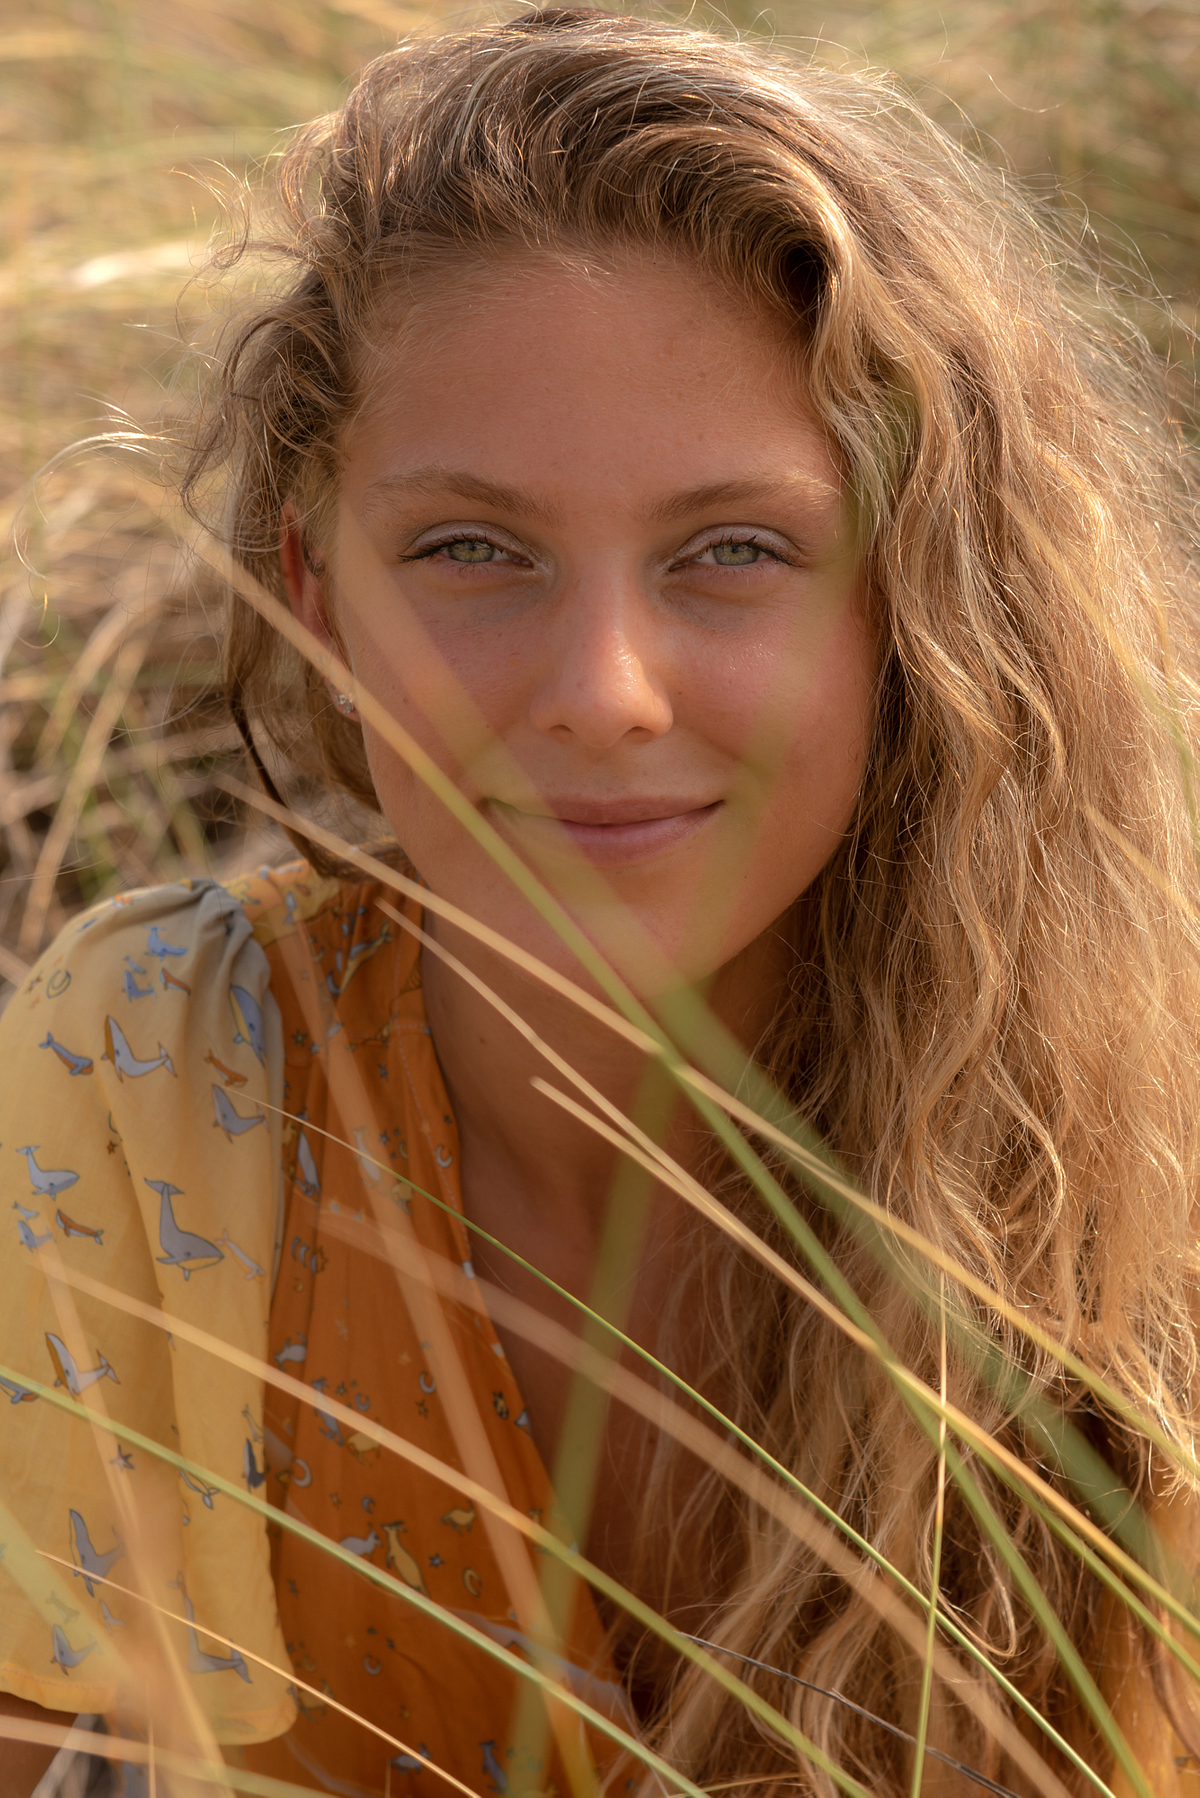 A lioness with beautiful smile. Portrait session at the beach in Son Serra de Marina. Balearic Islands